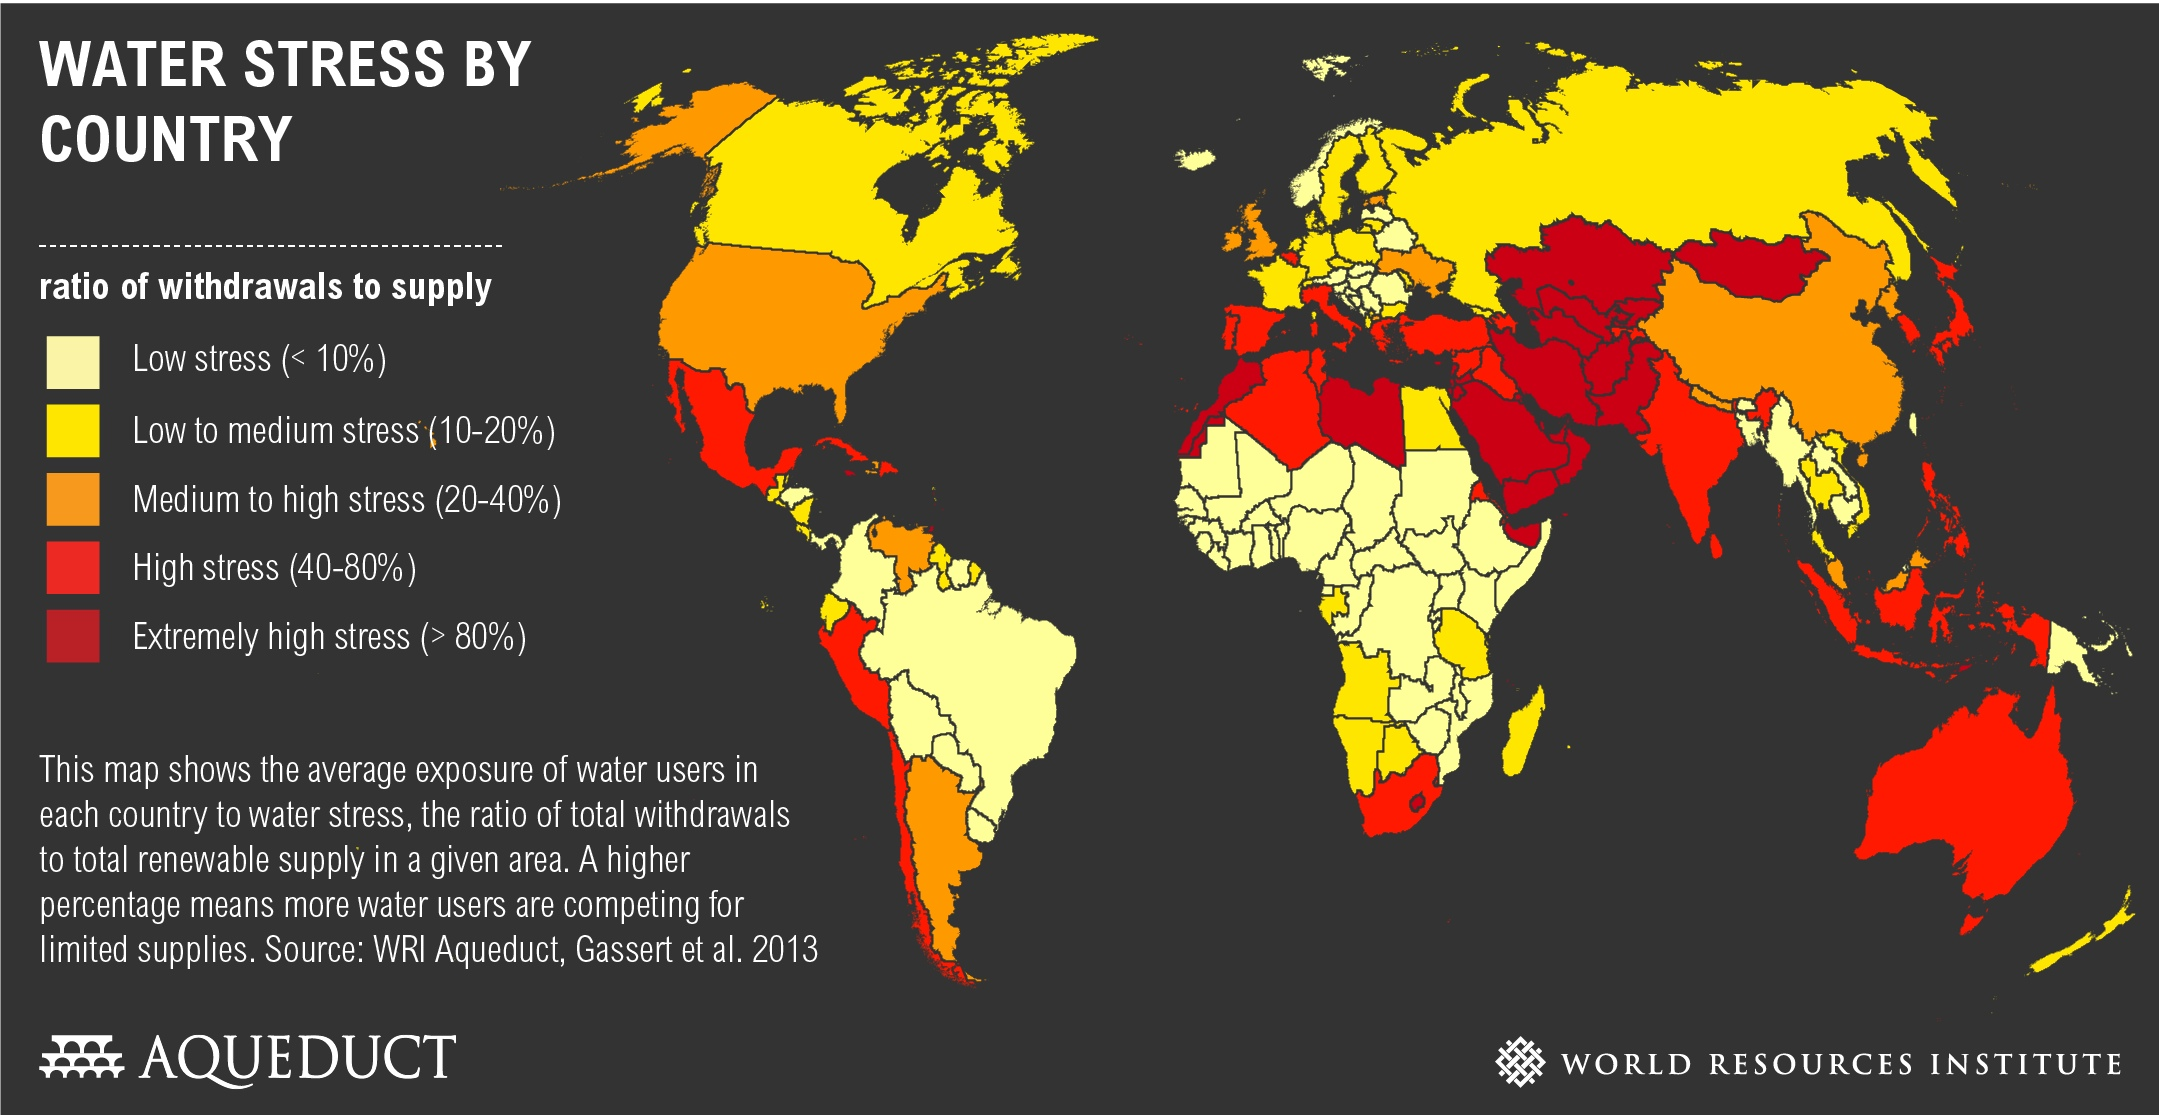 water_stress_by_country